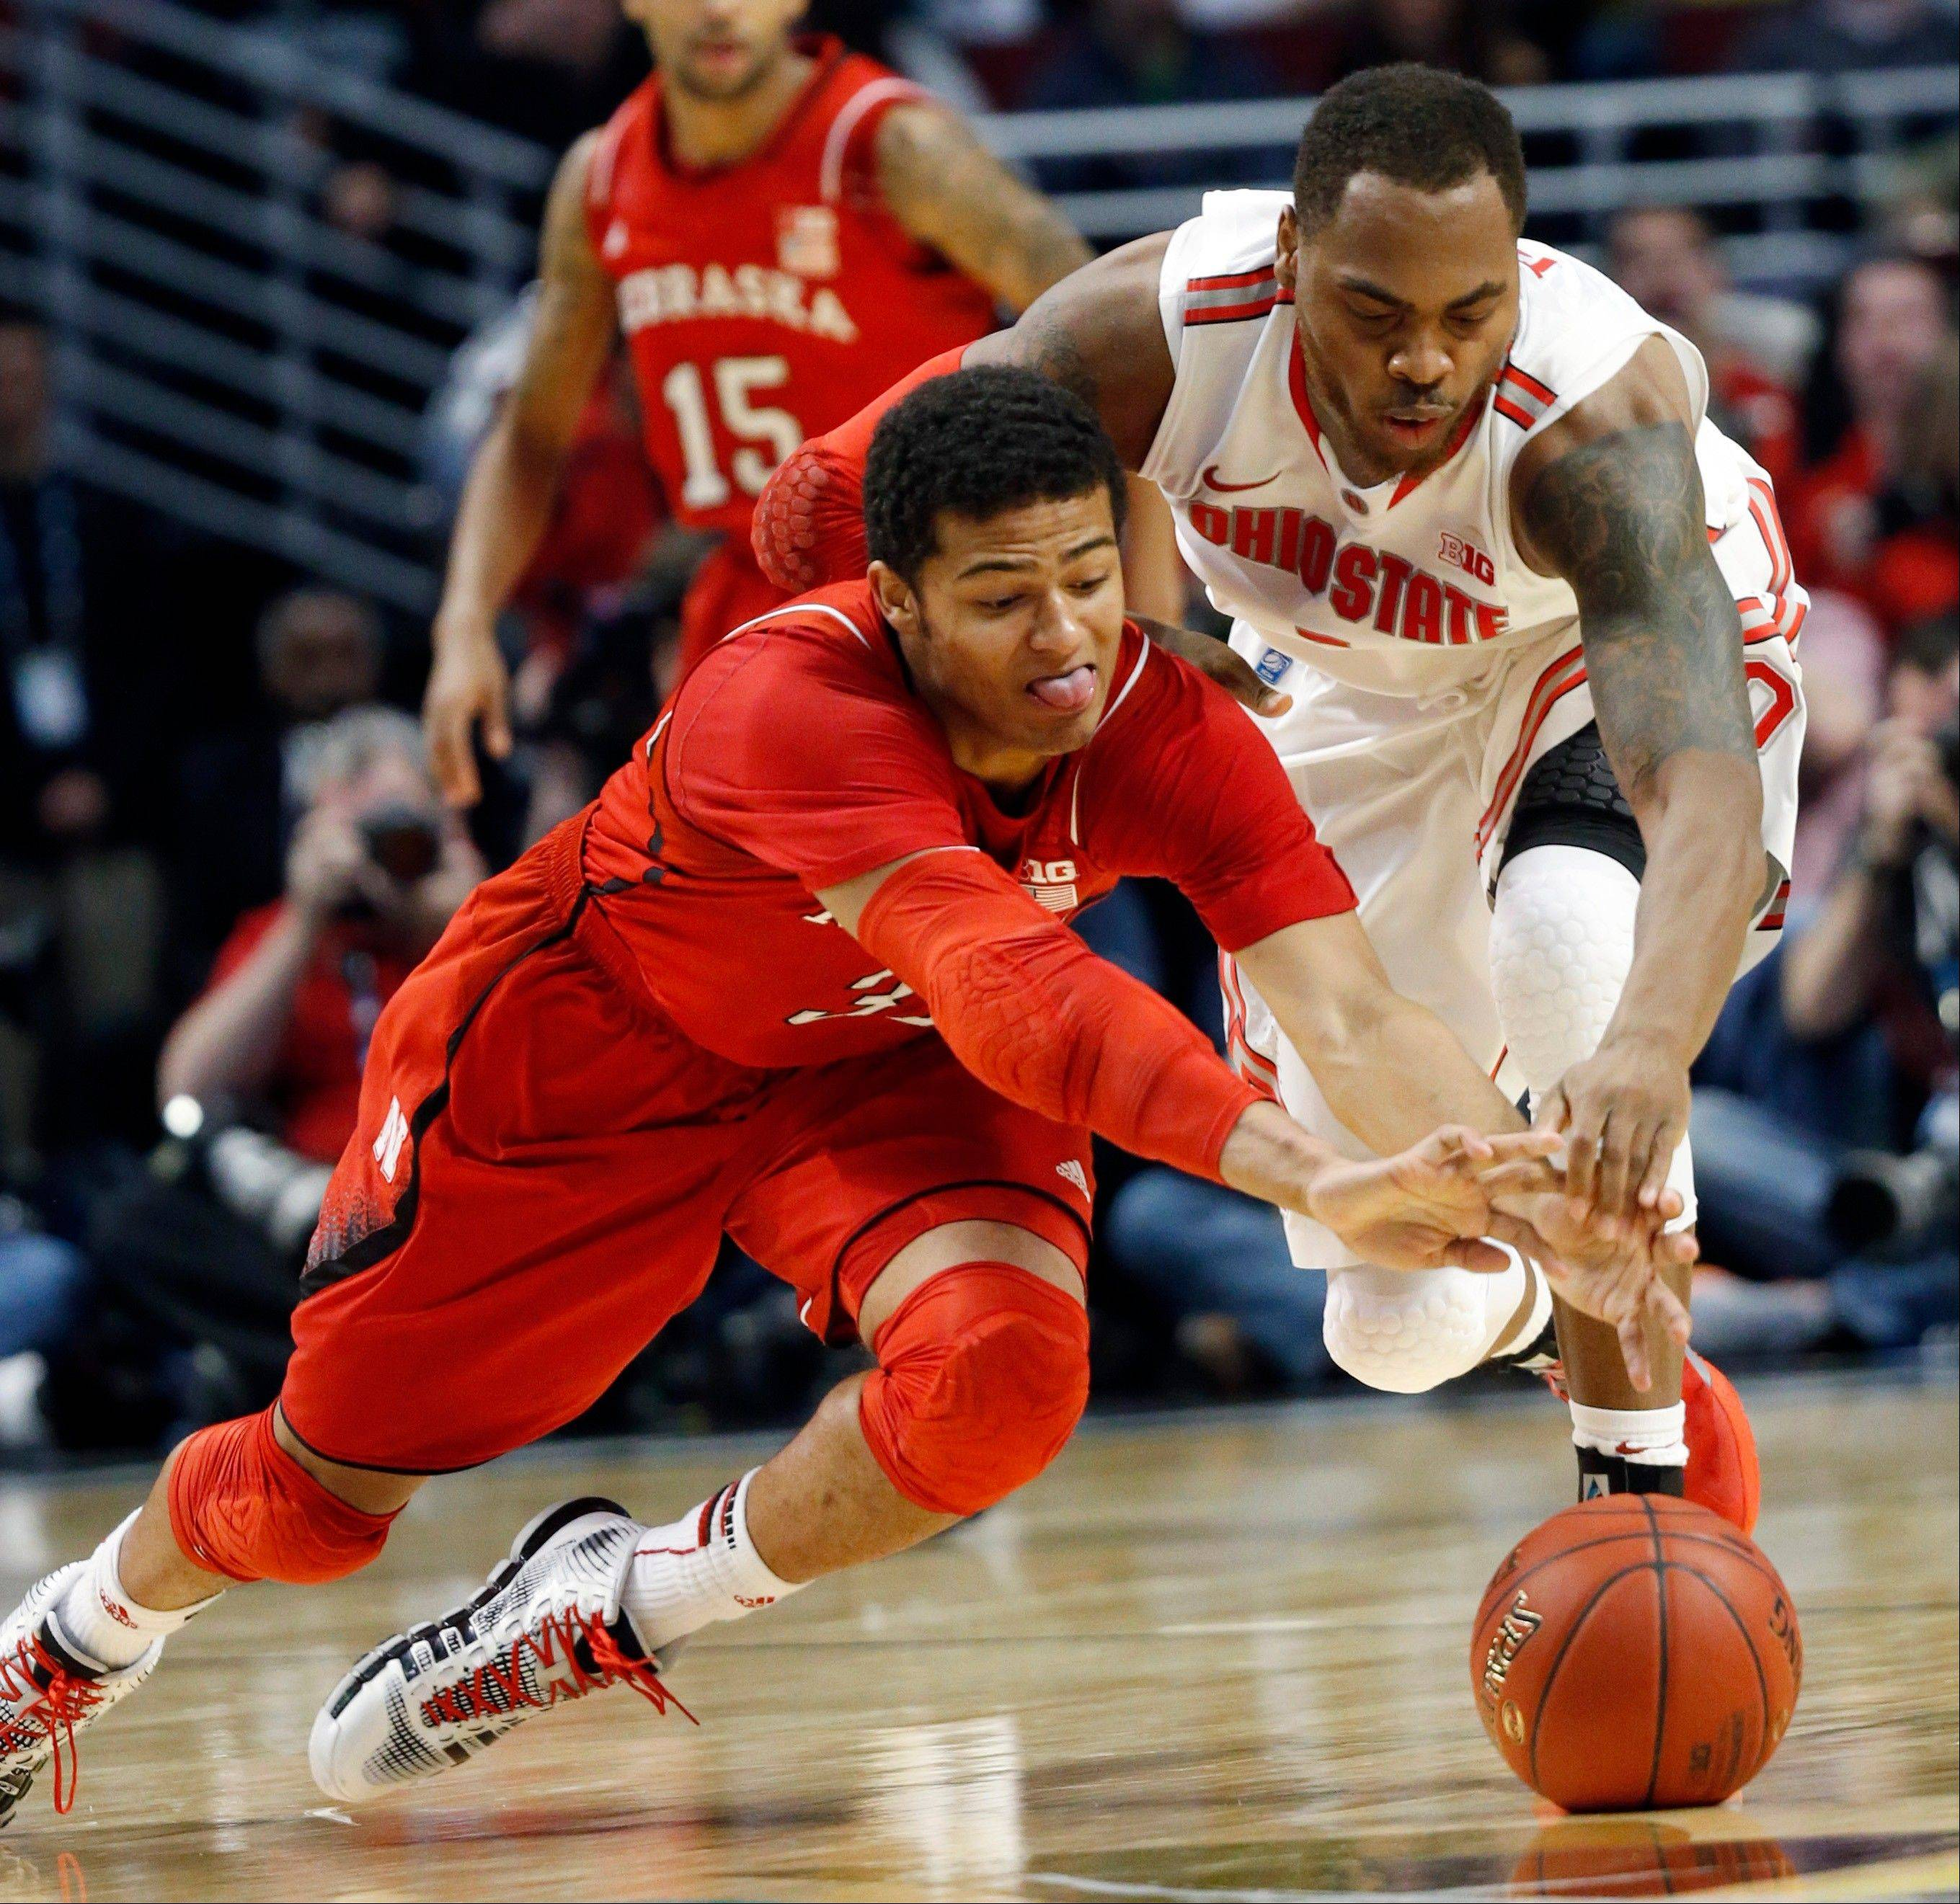 Nebraska's Shavon Shields and Ohio State's Deshaun Thomas battle for a loose ball during the second half of an NCAA college basketball game at the Big Ten tournament Friday, March 15, 2013, in Chicago. (AP Photo/Charles Rex Arbogast)